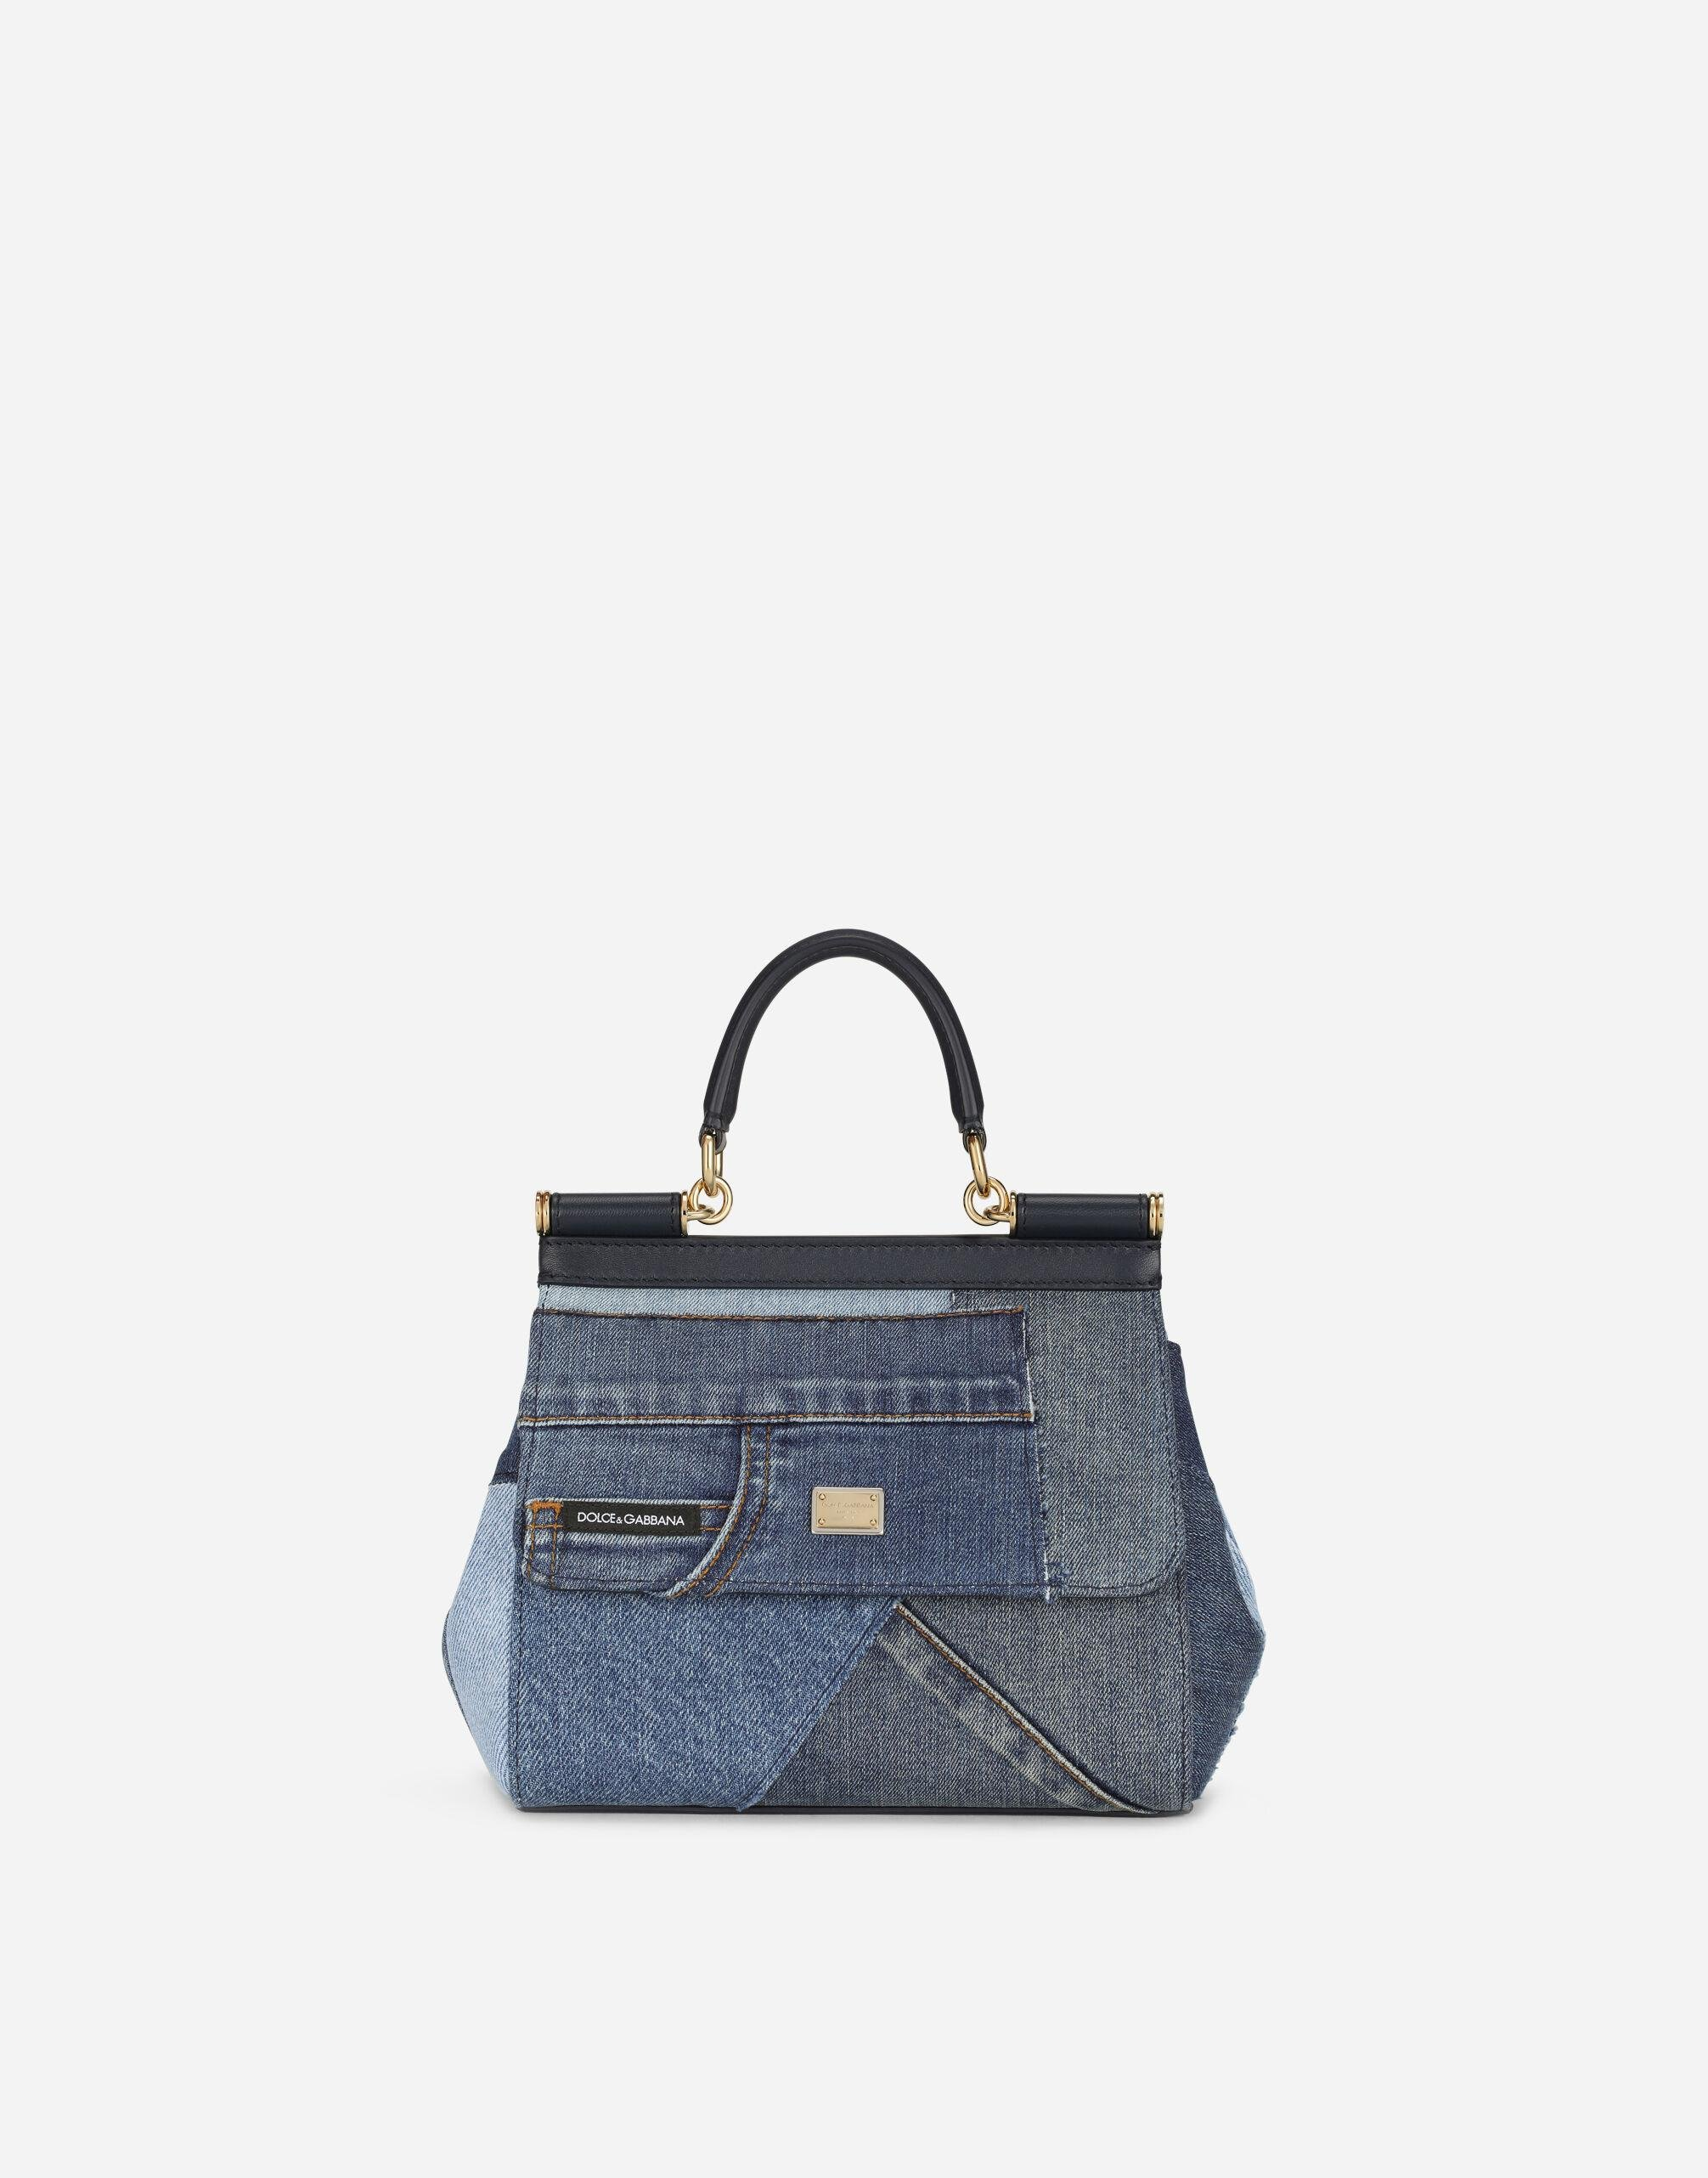 Small Sicily bag in patchwork denim and calfskin